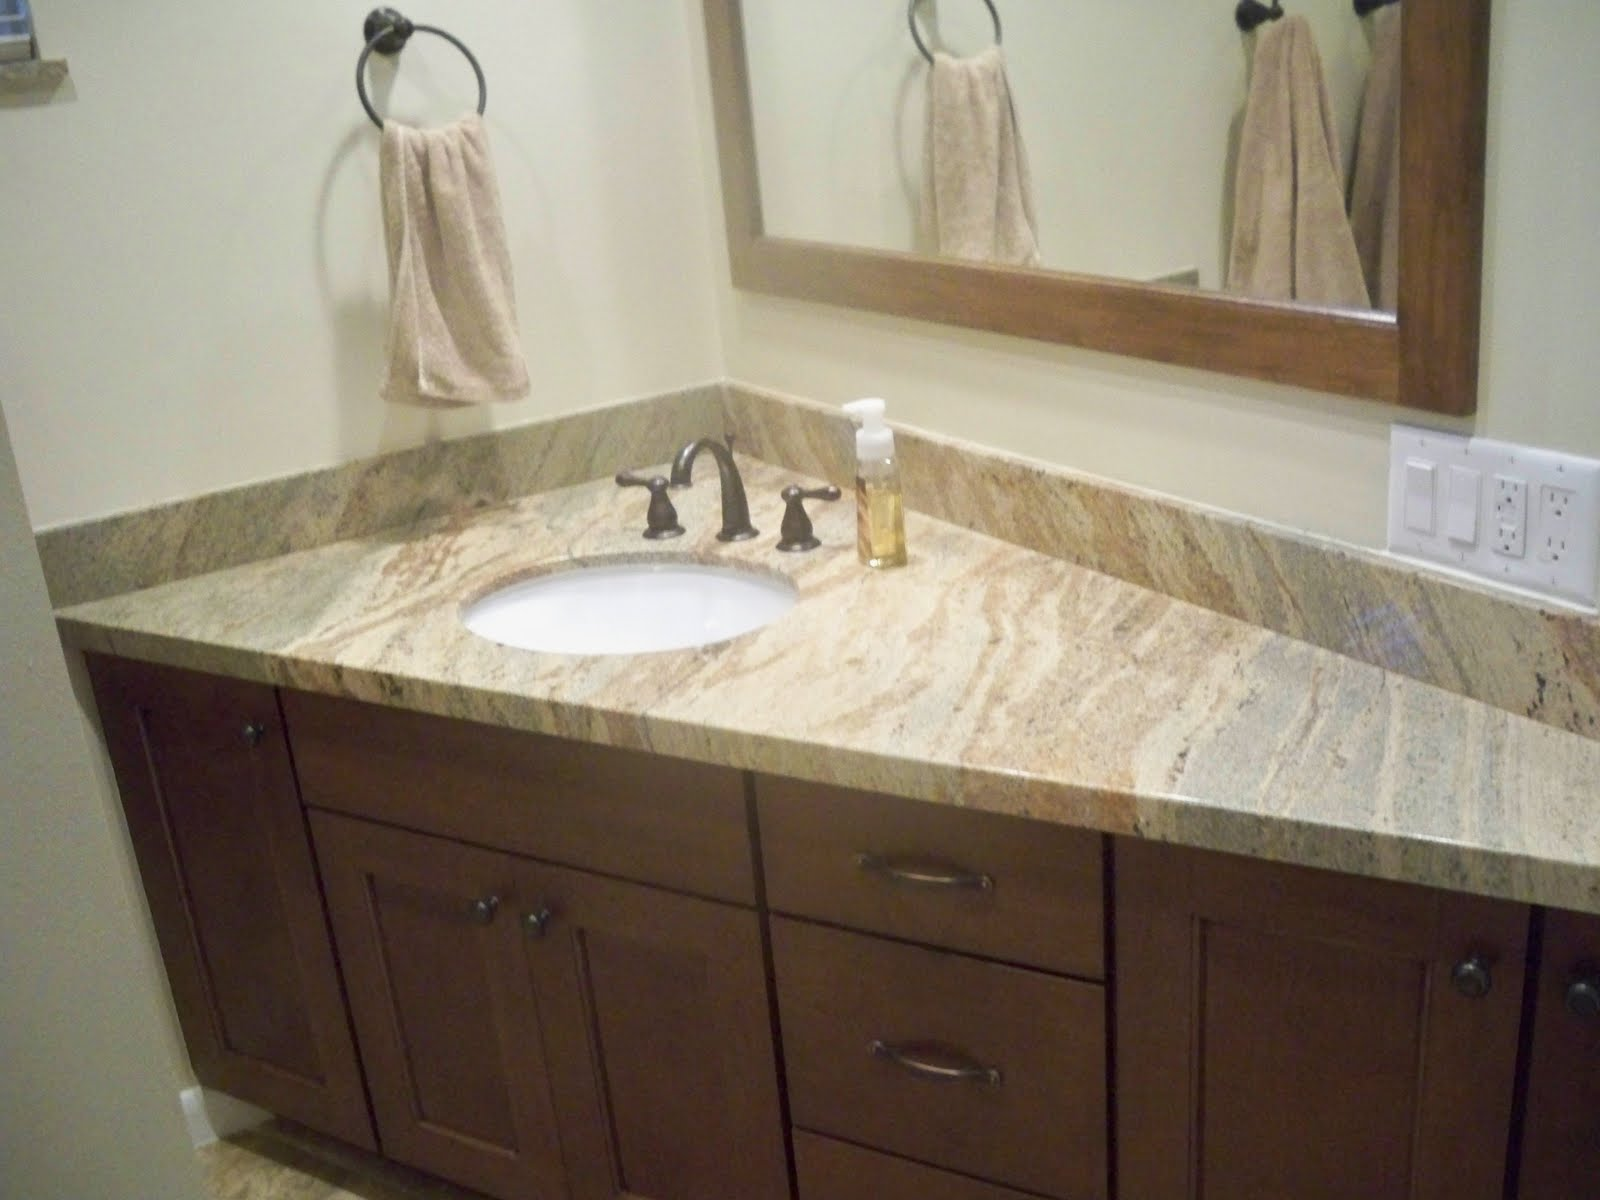 32 Interesting Bathroom Countertop Granite Tile Picture